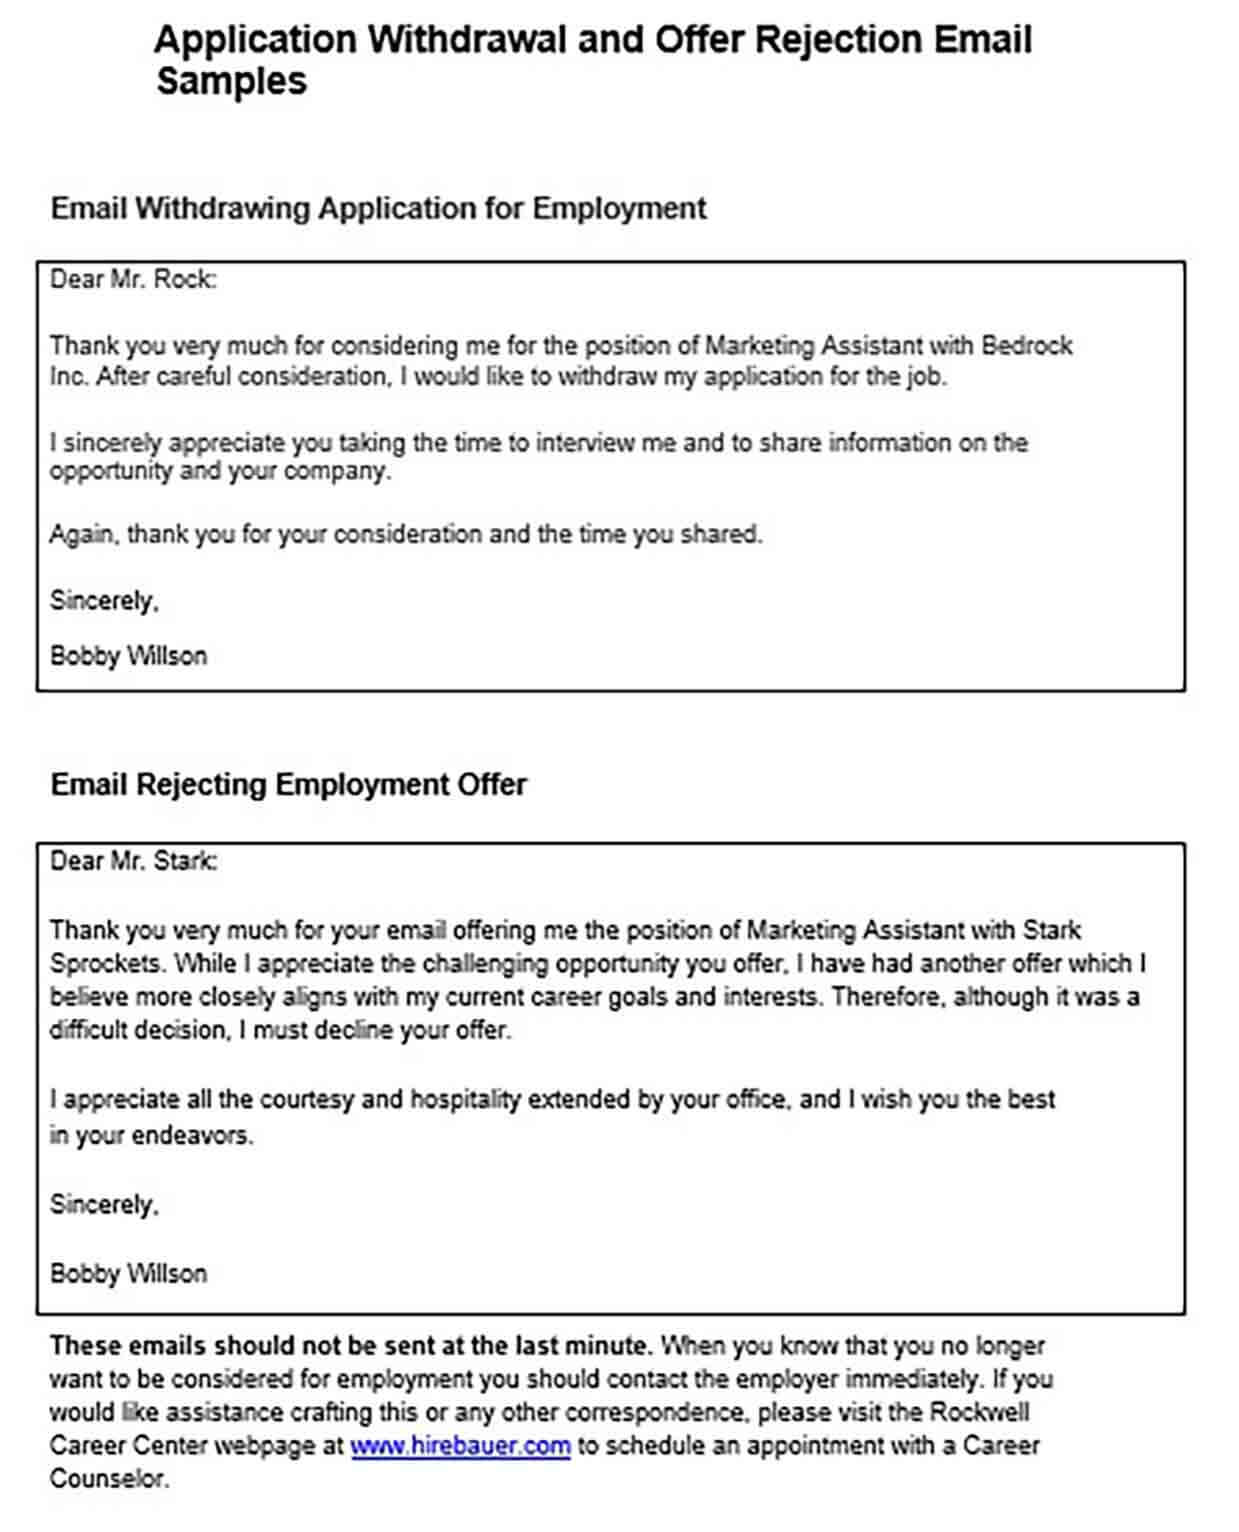 Employment Rejecting Letter Email